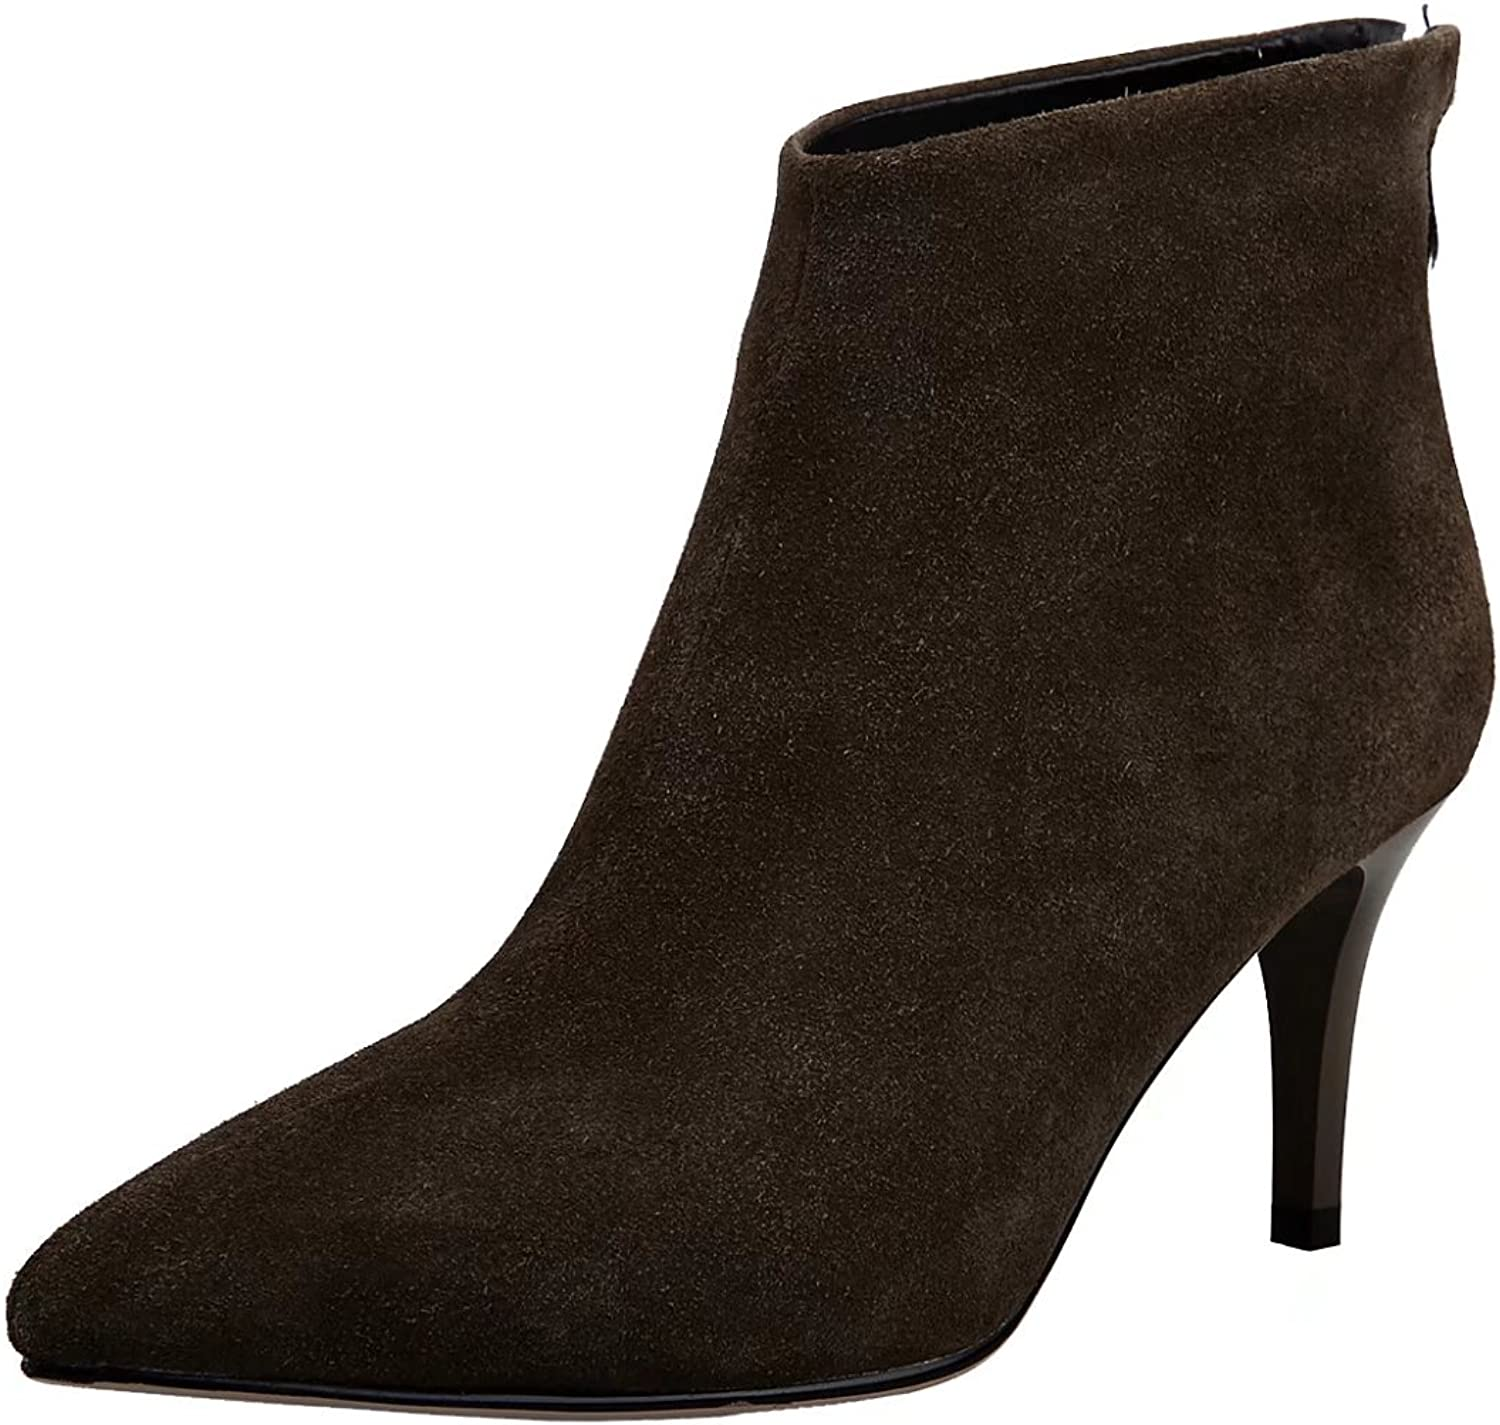 AIYOUMEI Women's Back Zipper Pointed Toe Booties Autumn Winter Ankle Boots